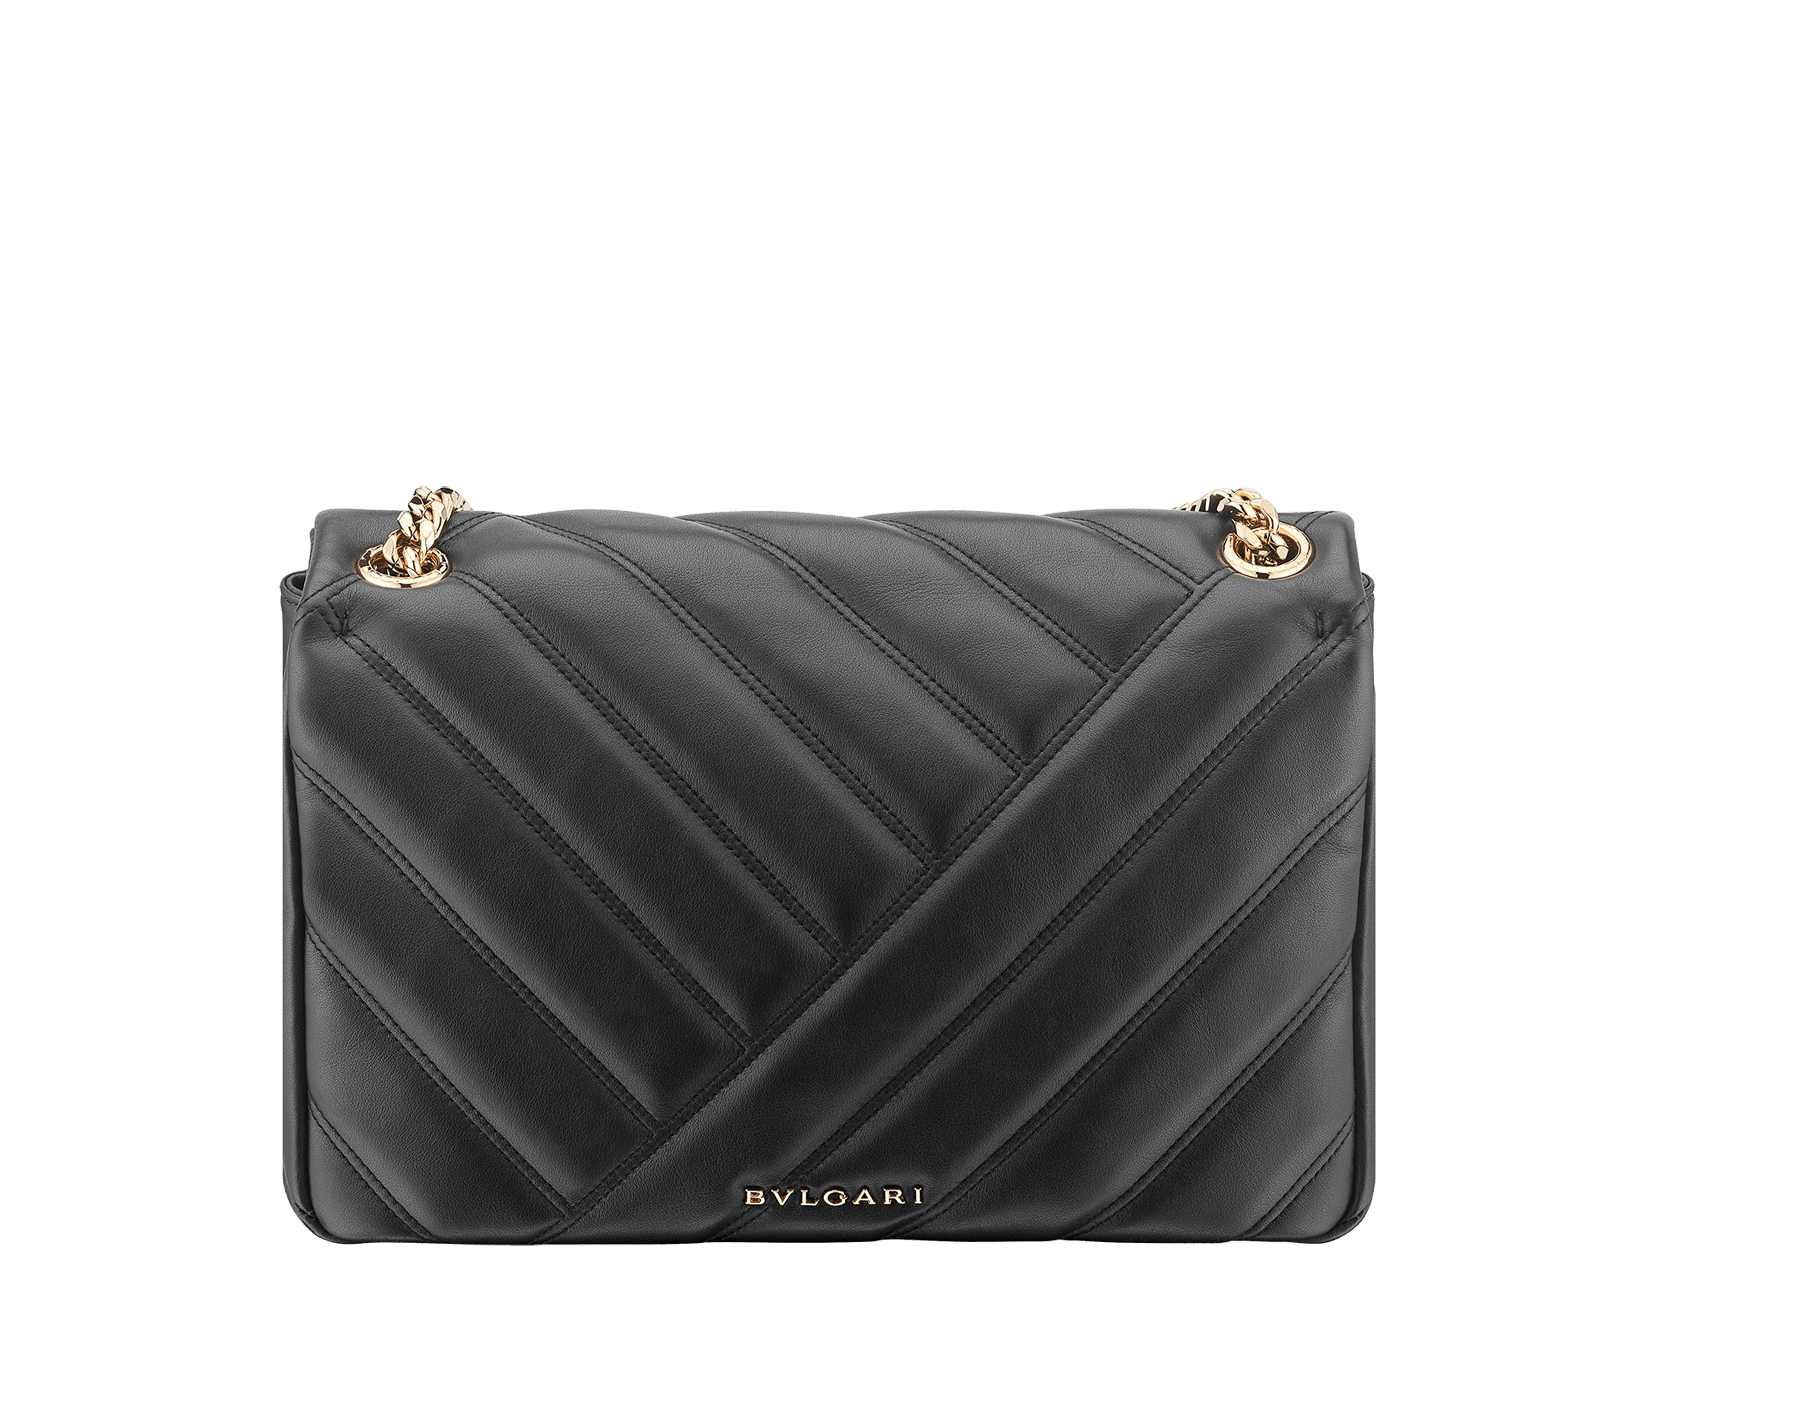 Serpenti Cabochon shoulder bag in soft matelassé white agate nappa leather with graphic motif and white agate calf leather. Snakehead closure in rose gold plated brass decorated with matte black and white enamel, and black onyx eyes. 979-NSM image 3